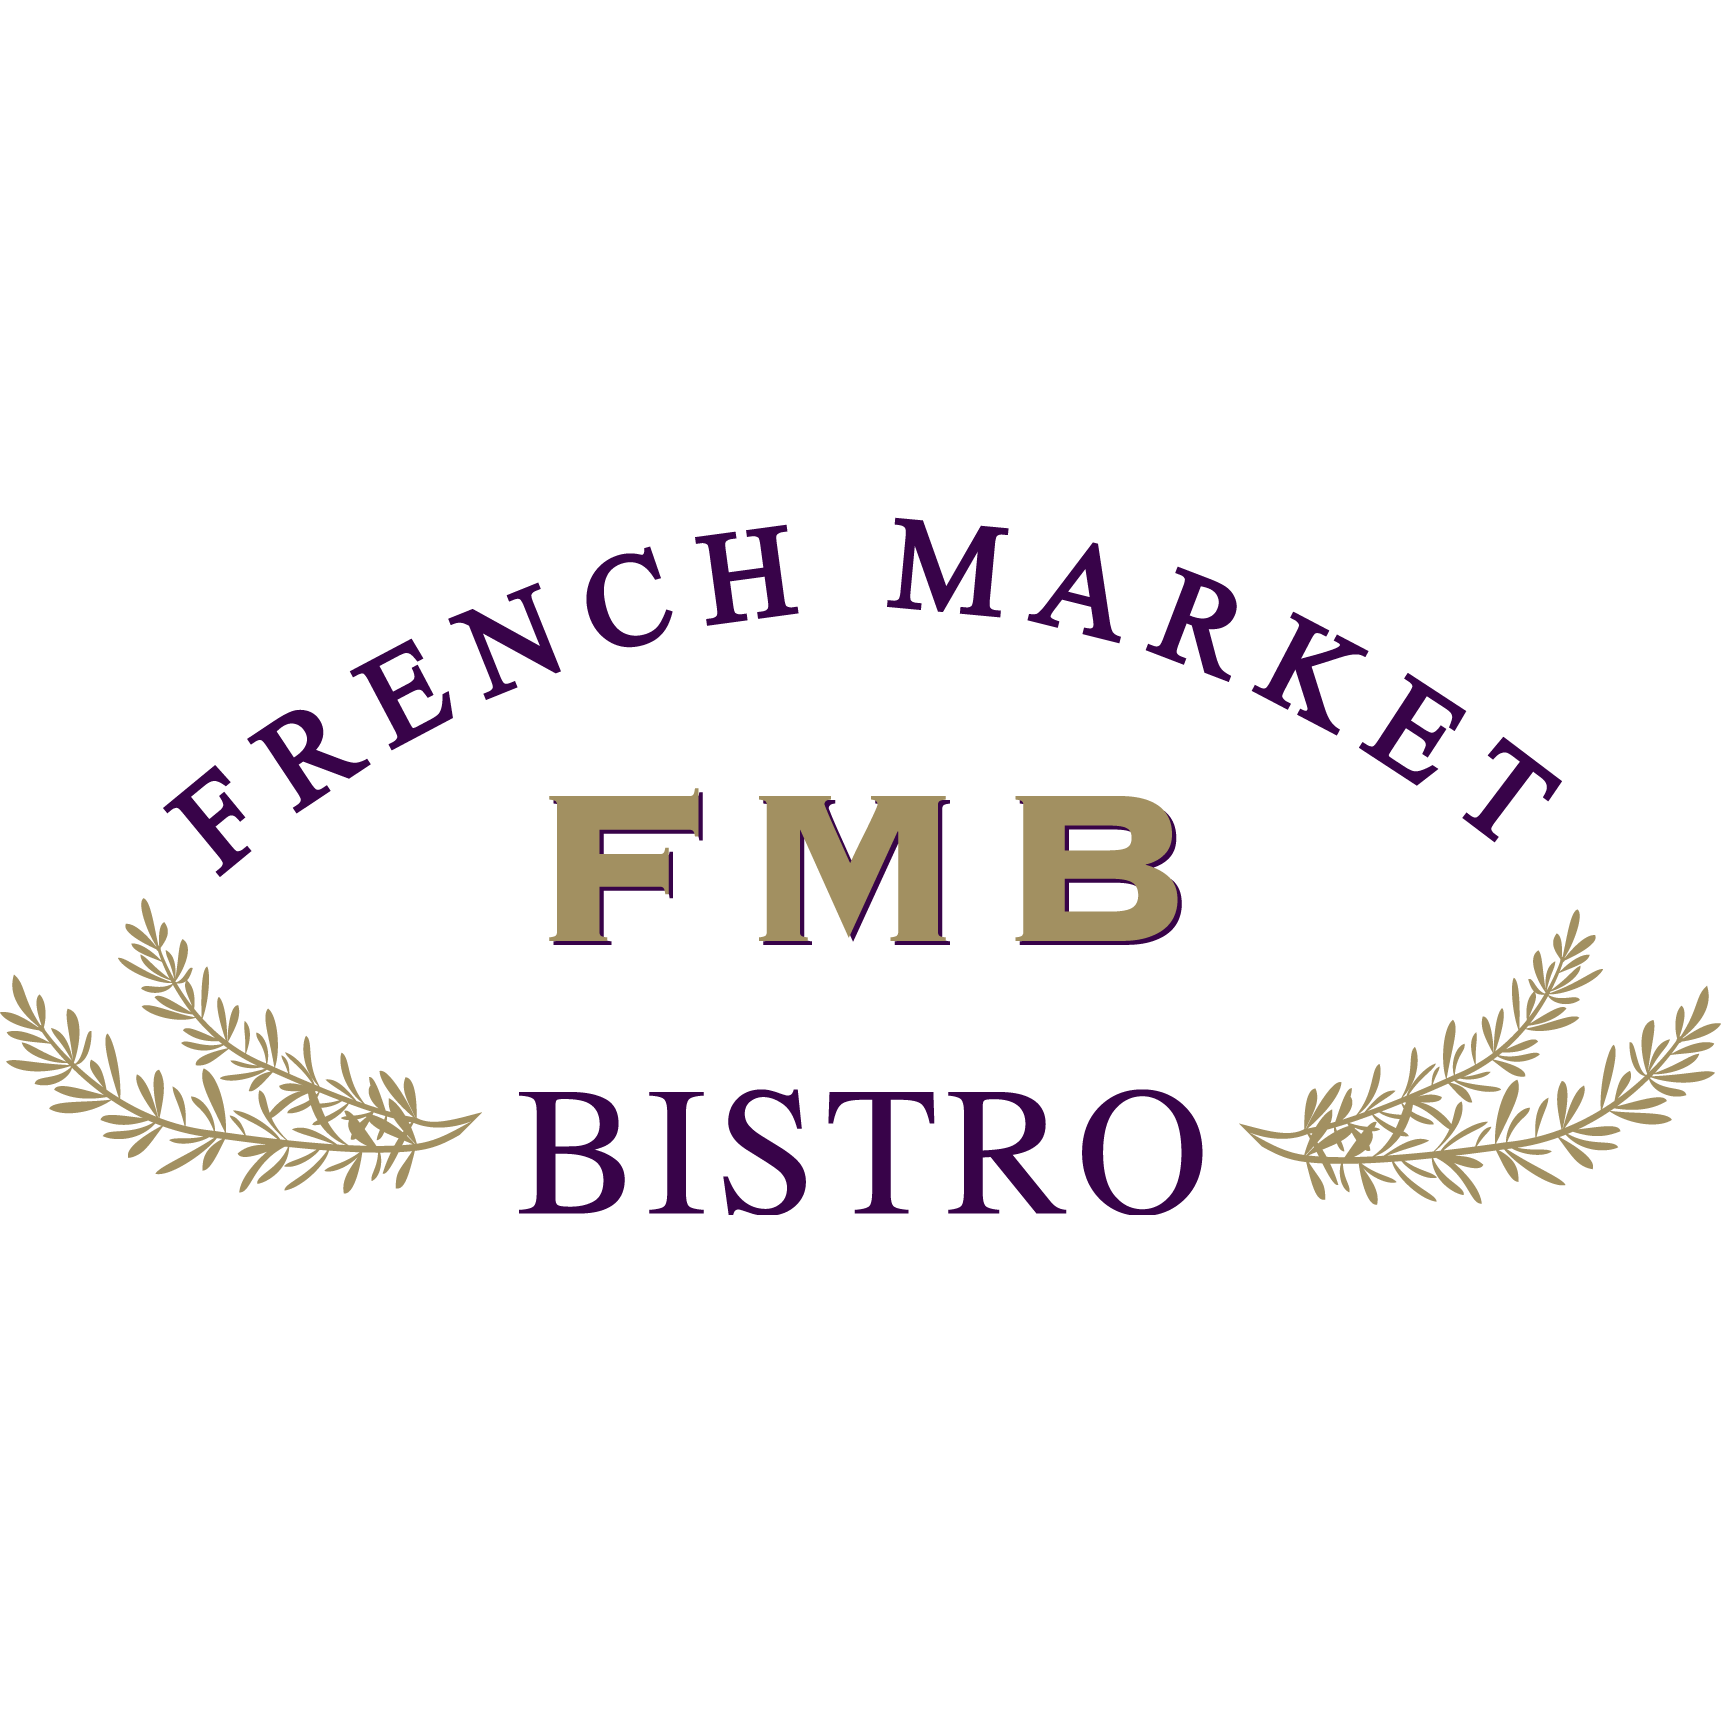 French Market Bistro - Baton Rouge, LA - Restaurants